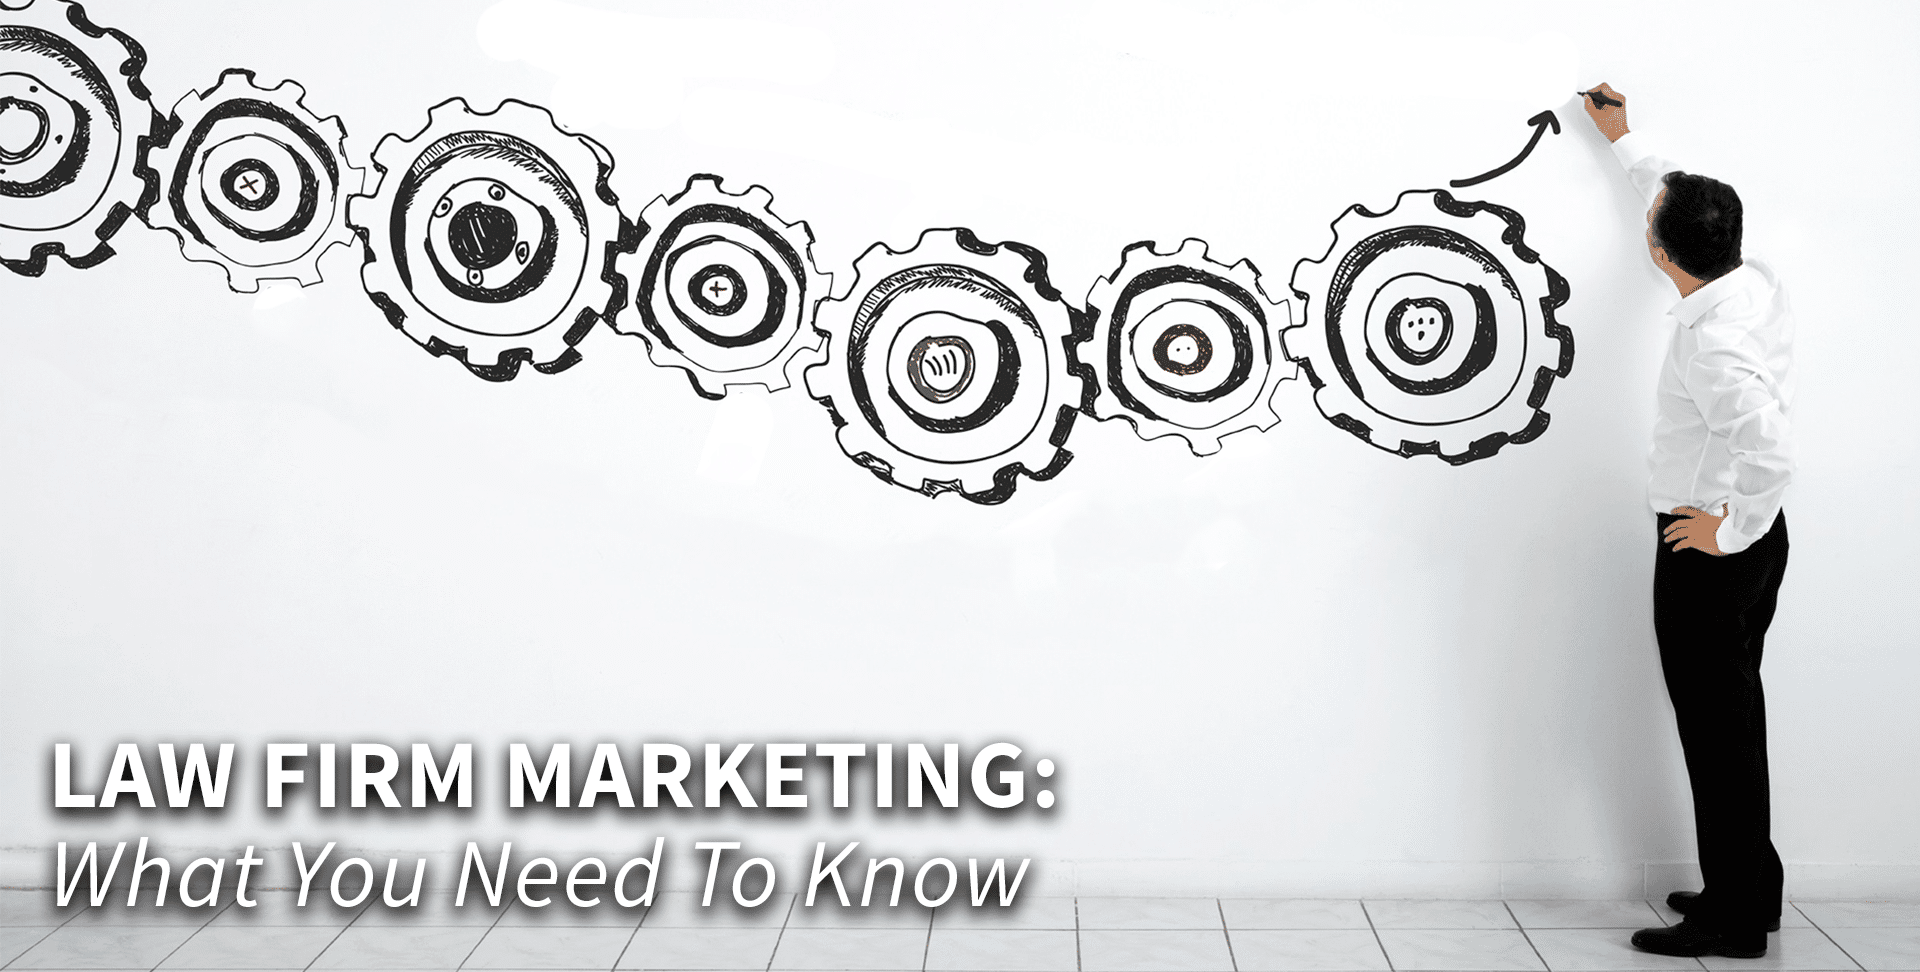 5 Things We Know About Law Firm Marketing (And You Should Too!)